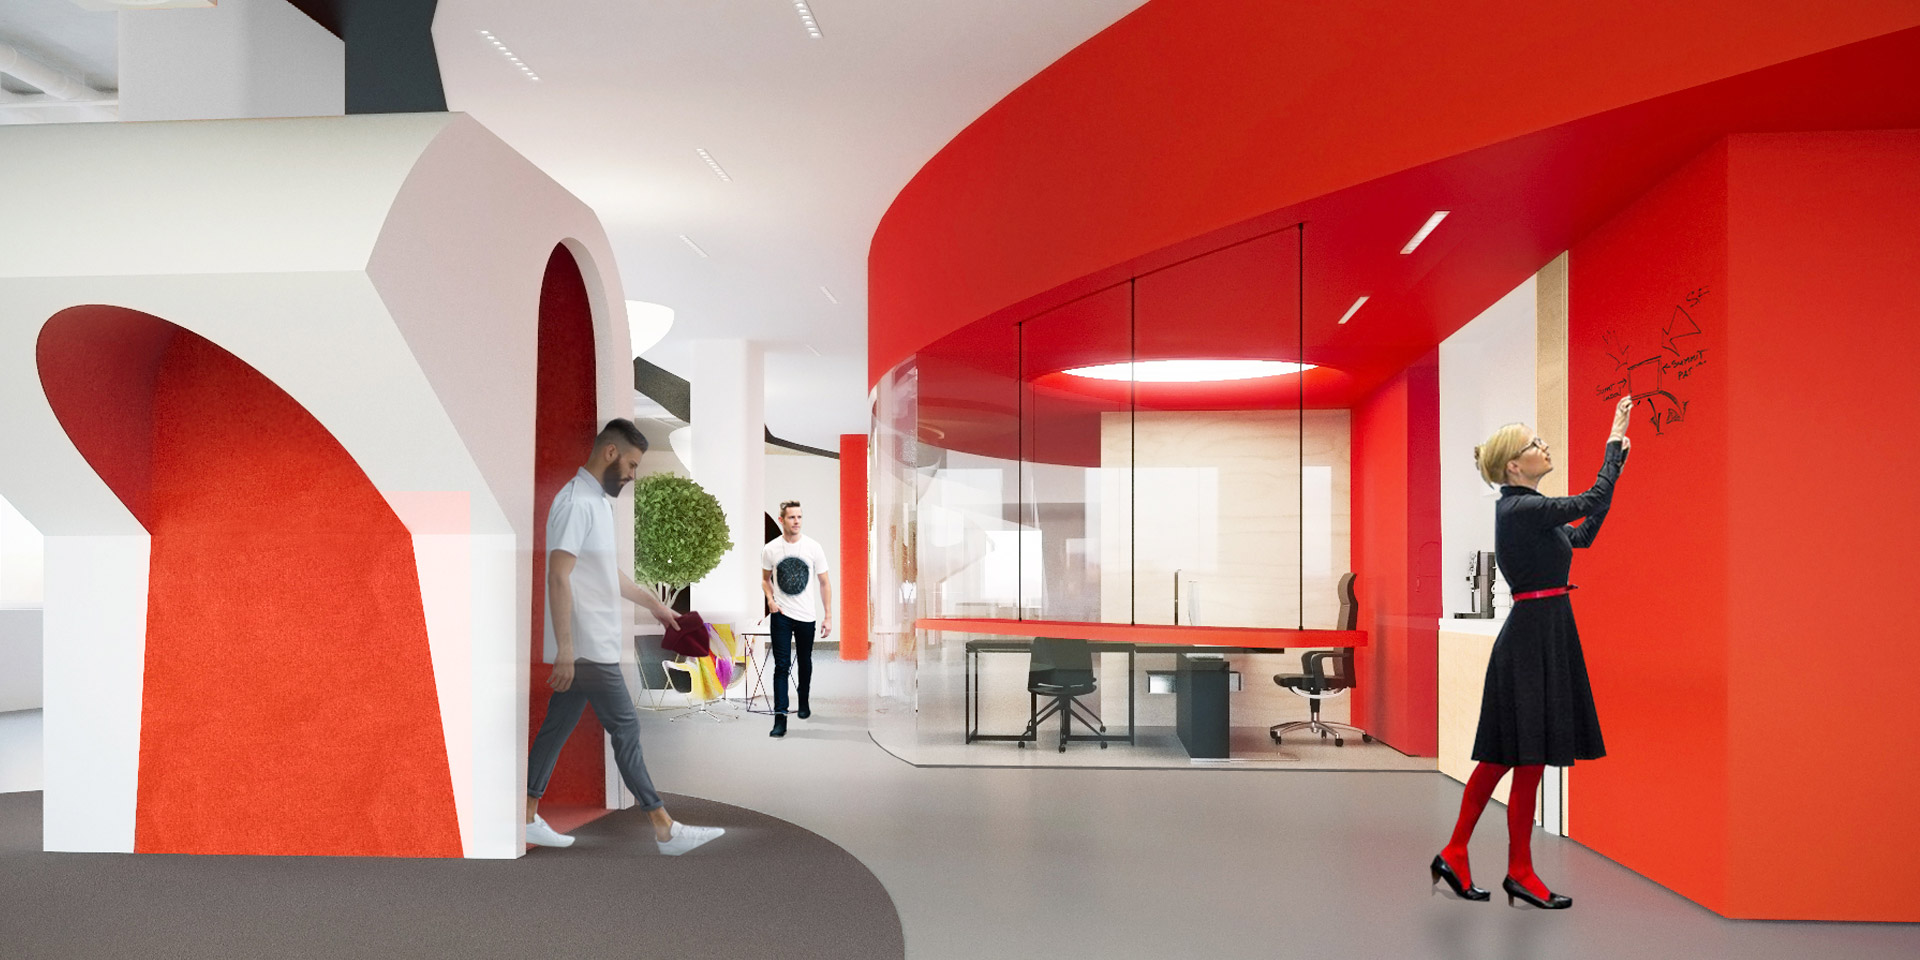 Concept of Yandex Office